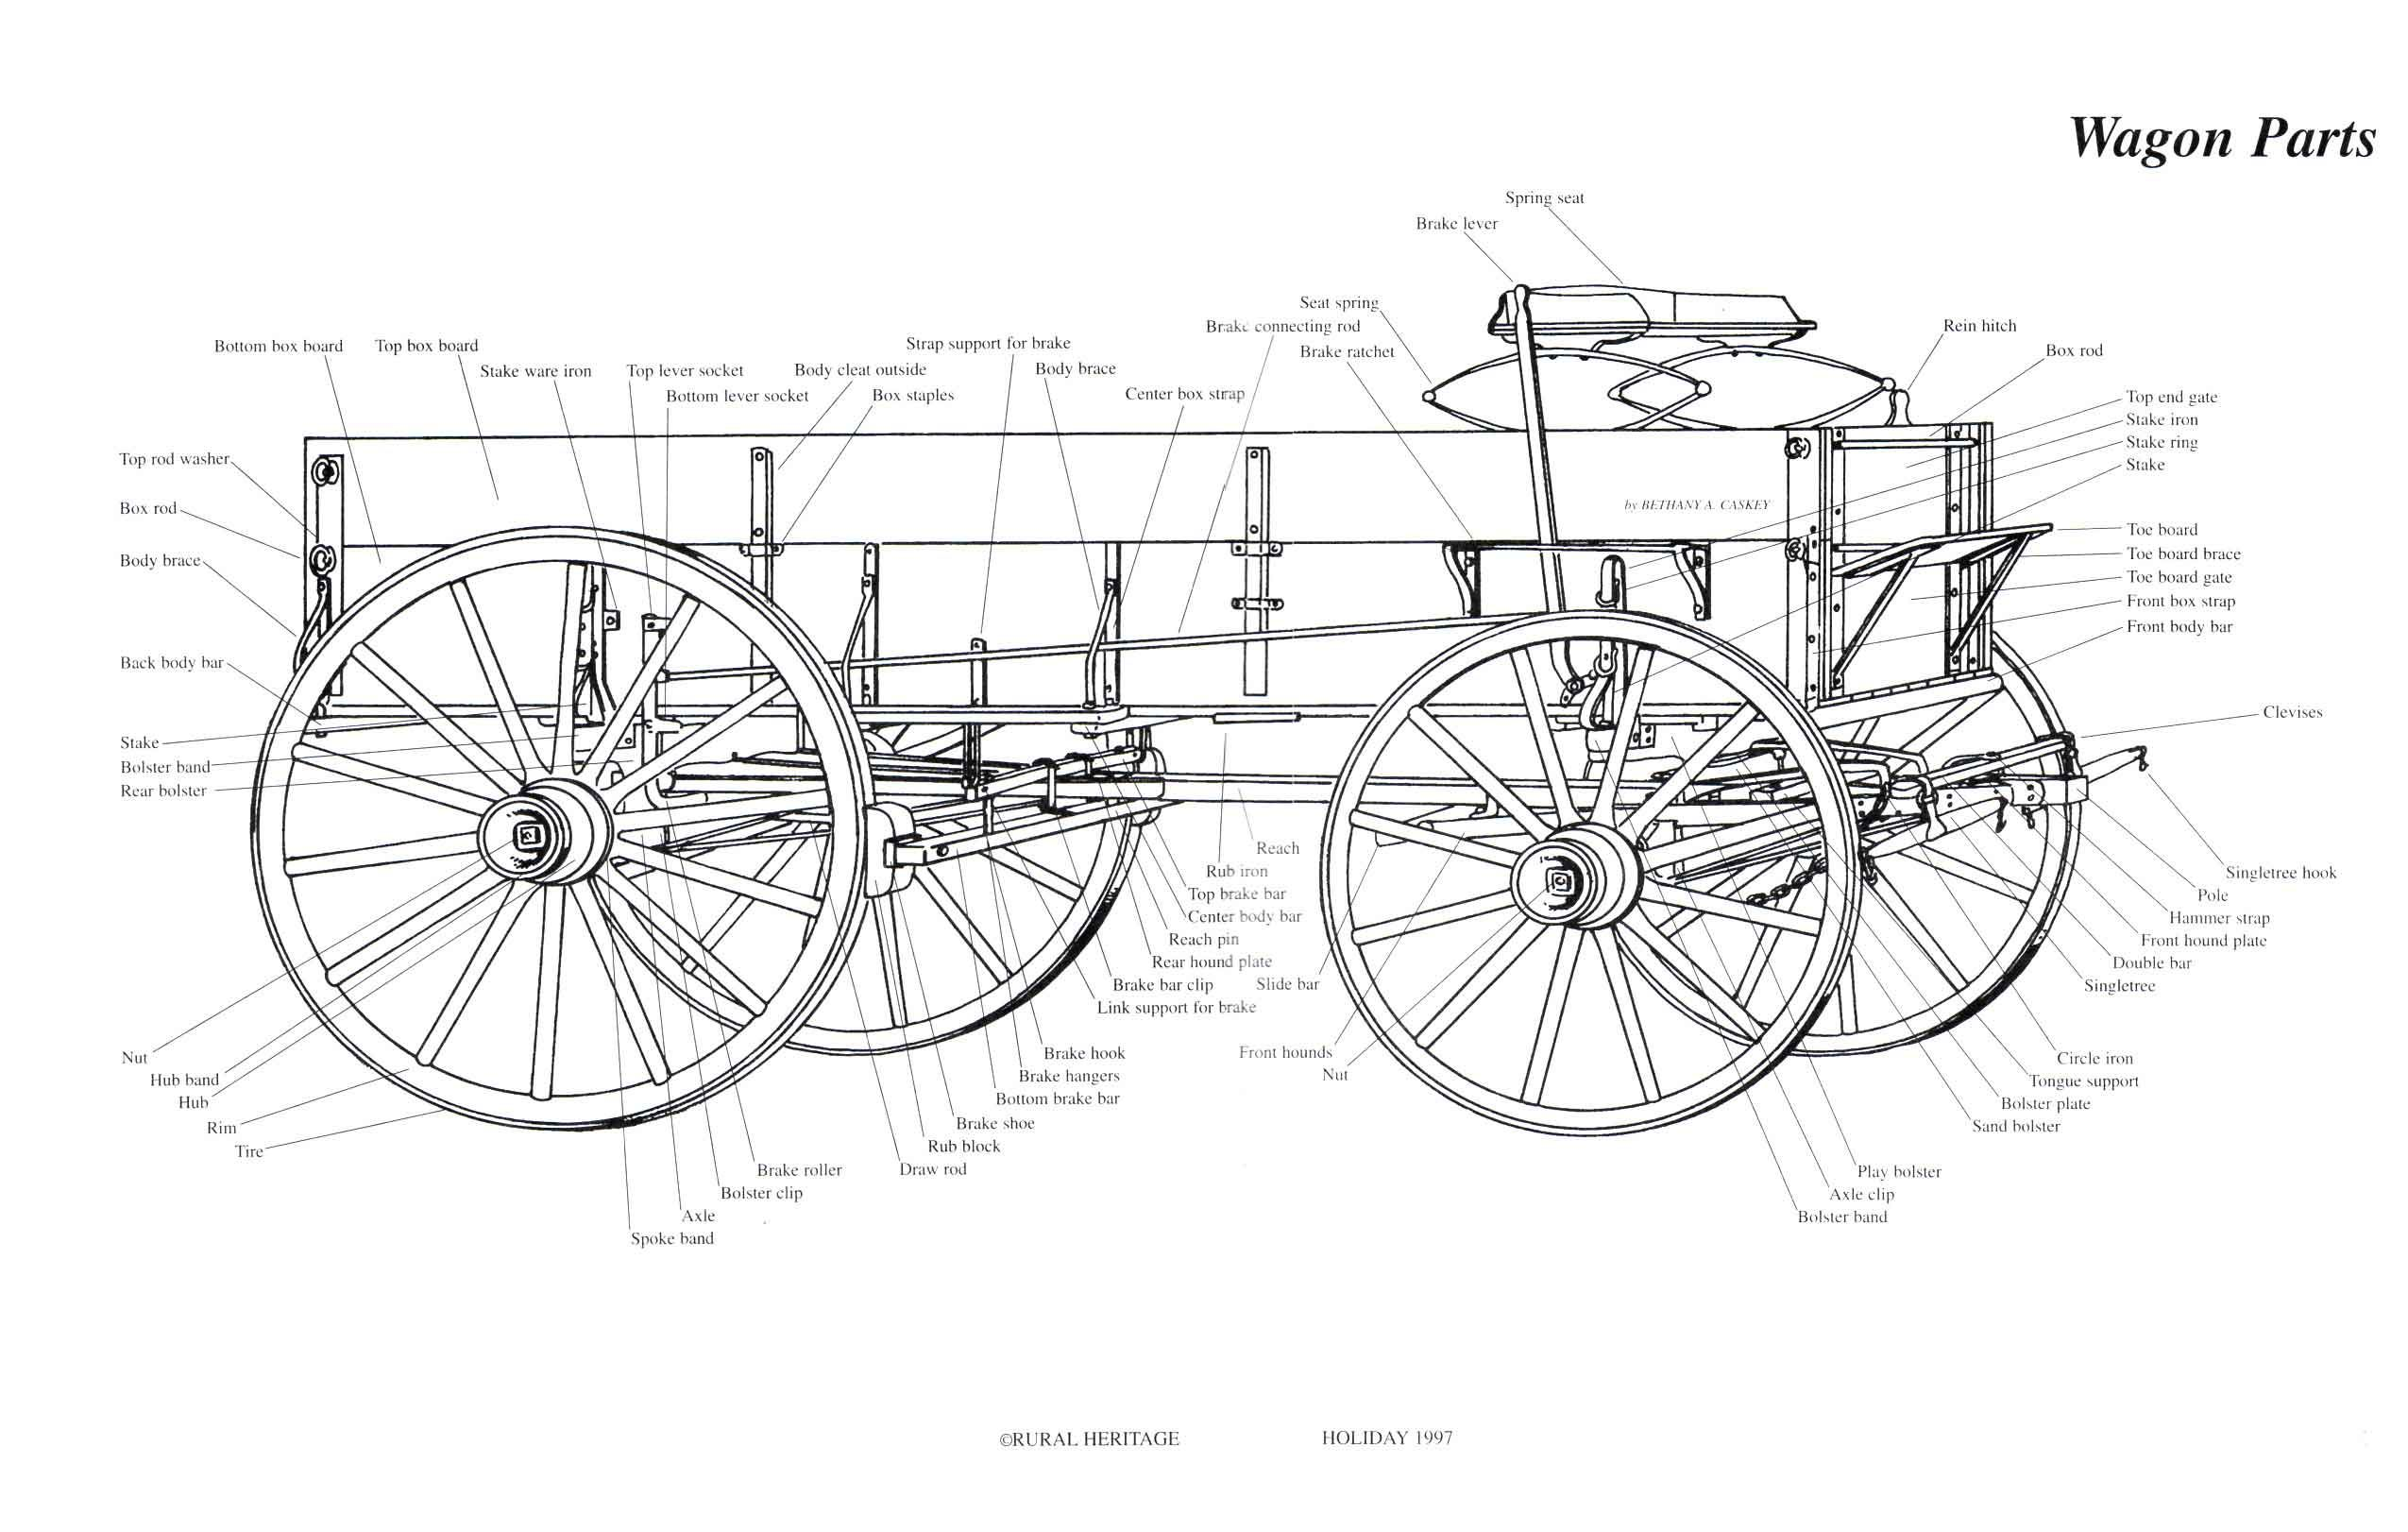 Parts Of A Wagon Illustrations